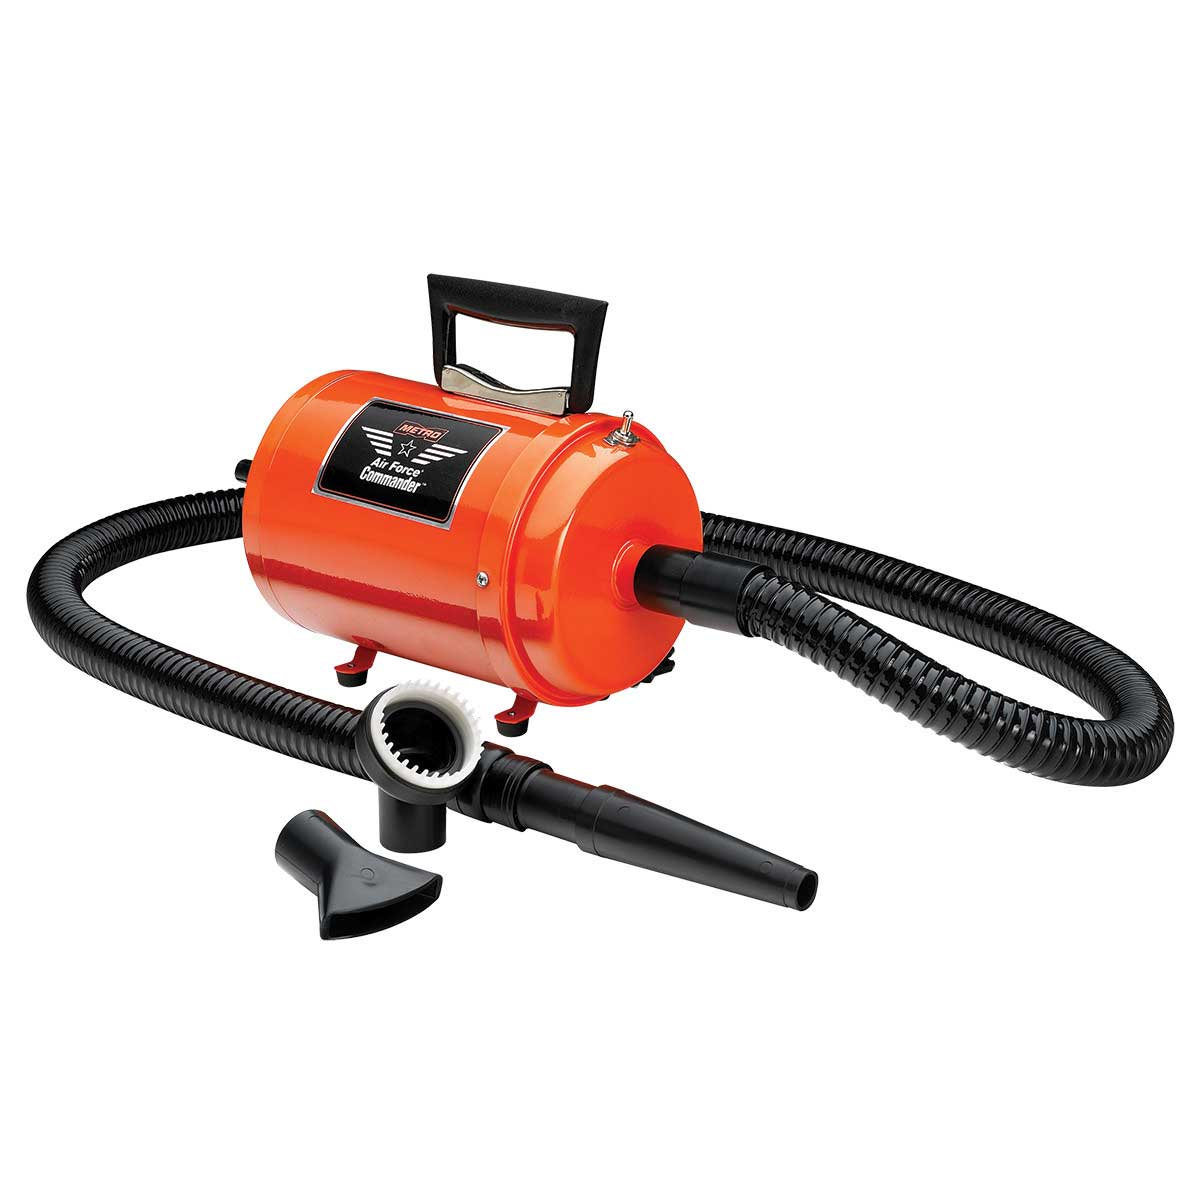 Metro Air Force Commander Variable Speed Dryer in Orange